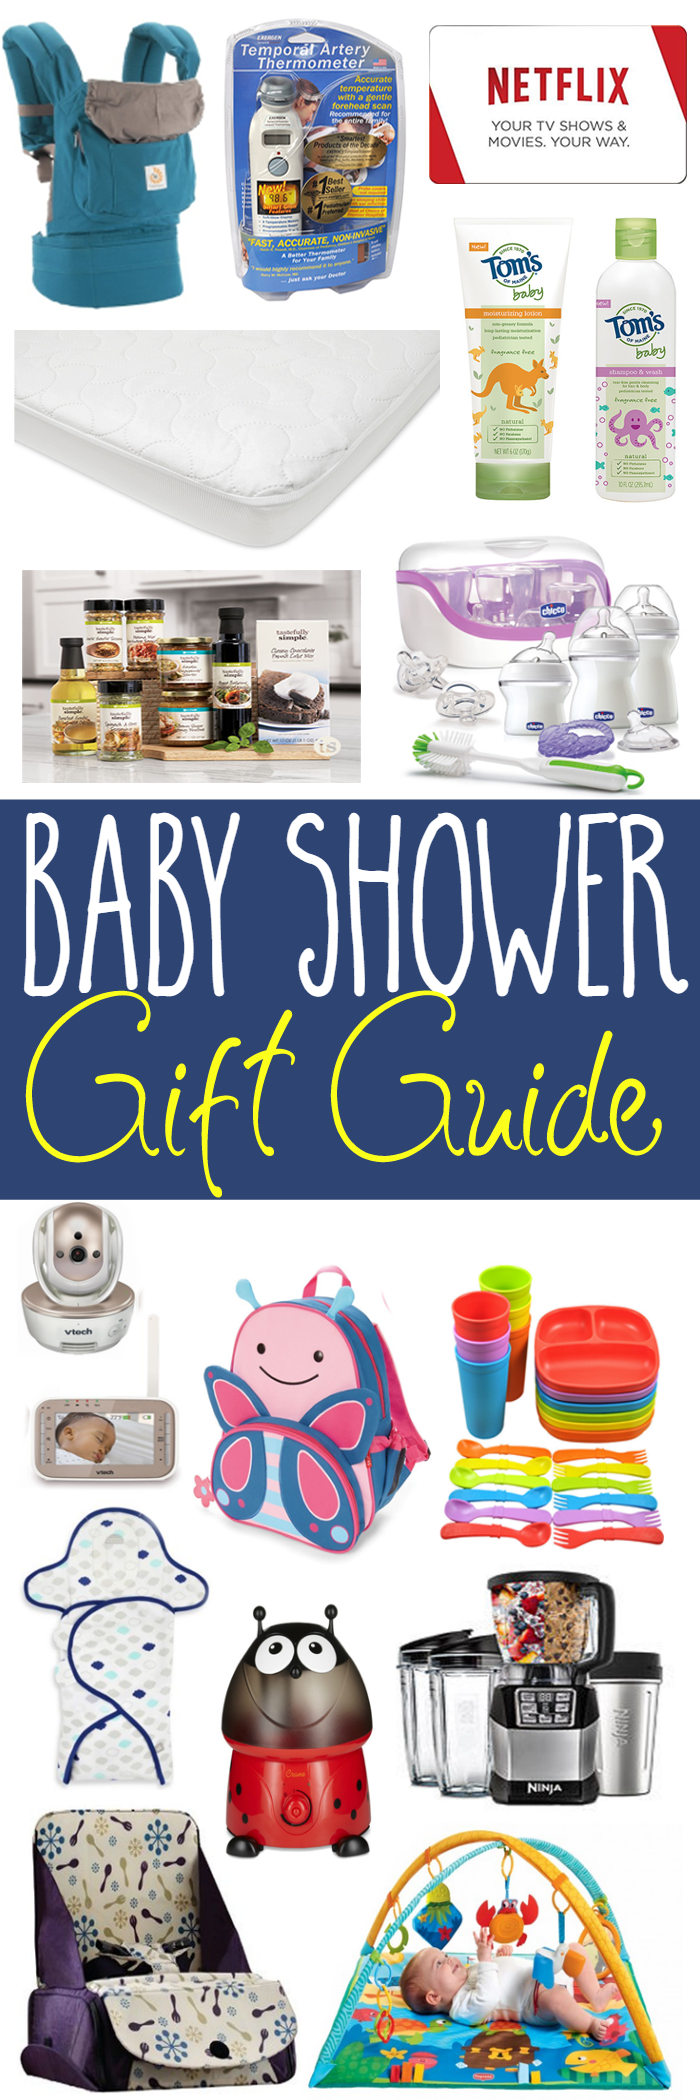 Baby Shower Gift Guide - Gifts that a new mom may not have registered for, but will absolutely love!